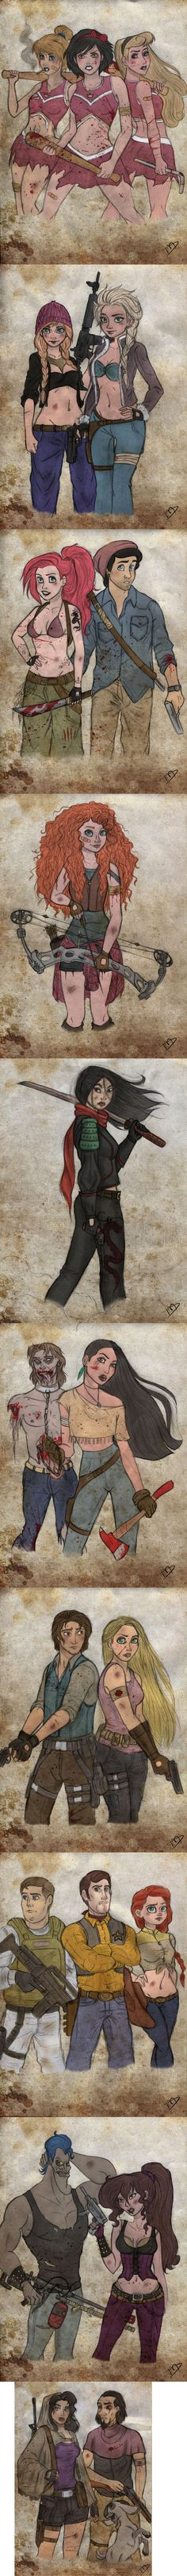 The Walking Disney-a little sad that Repunzel didn't have a frying pan as her weapon